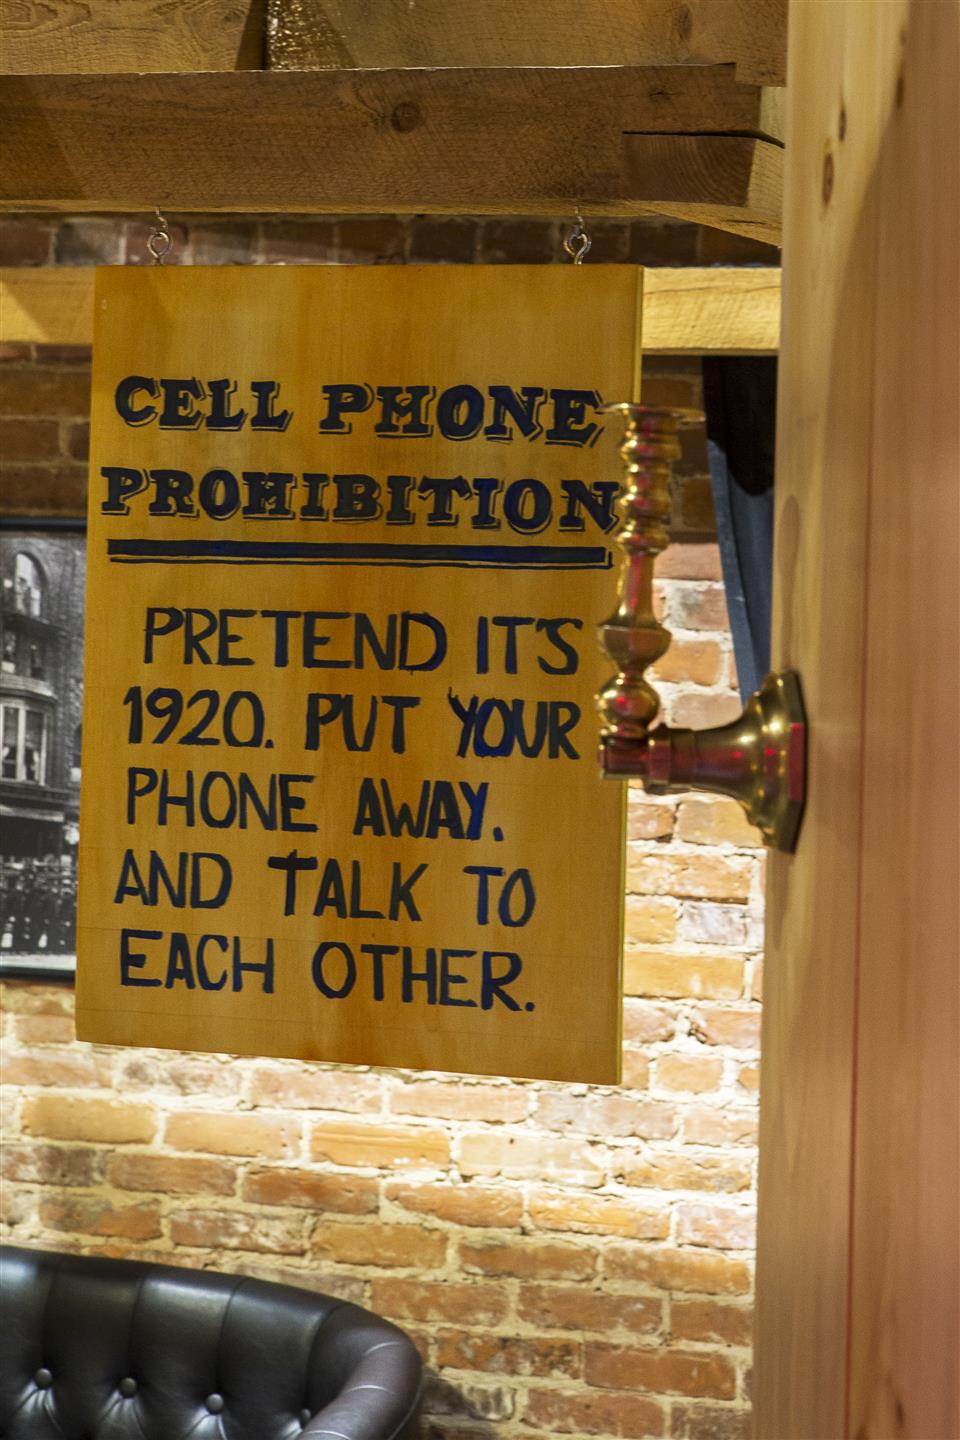 a sign discouraging cellphone use